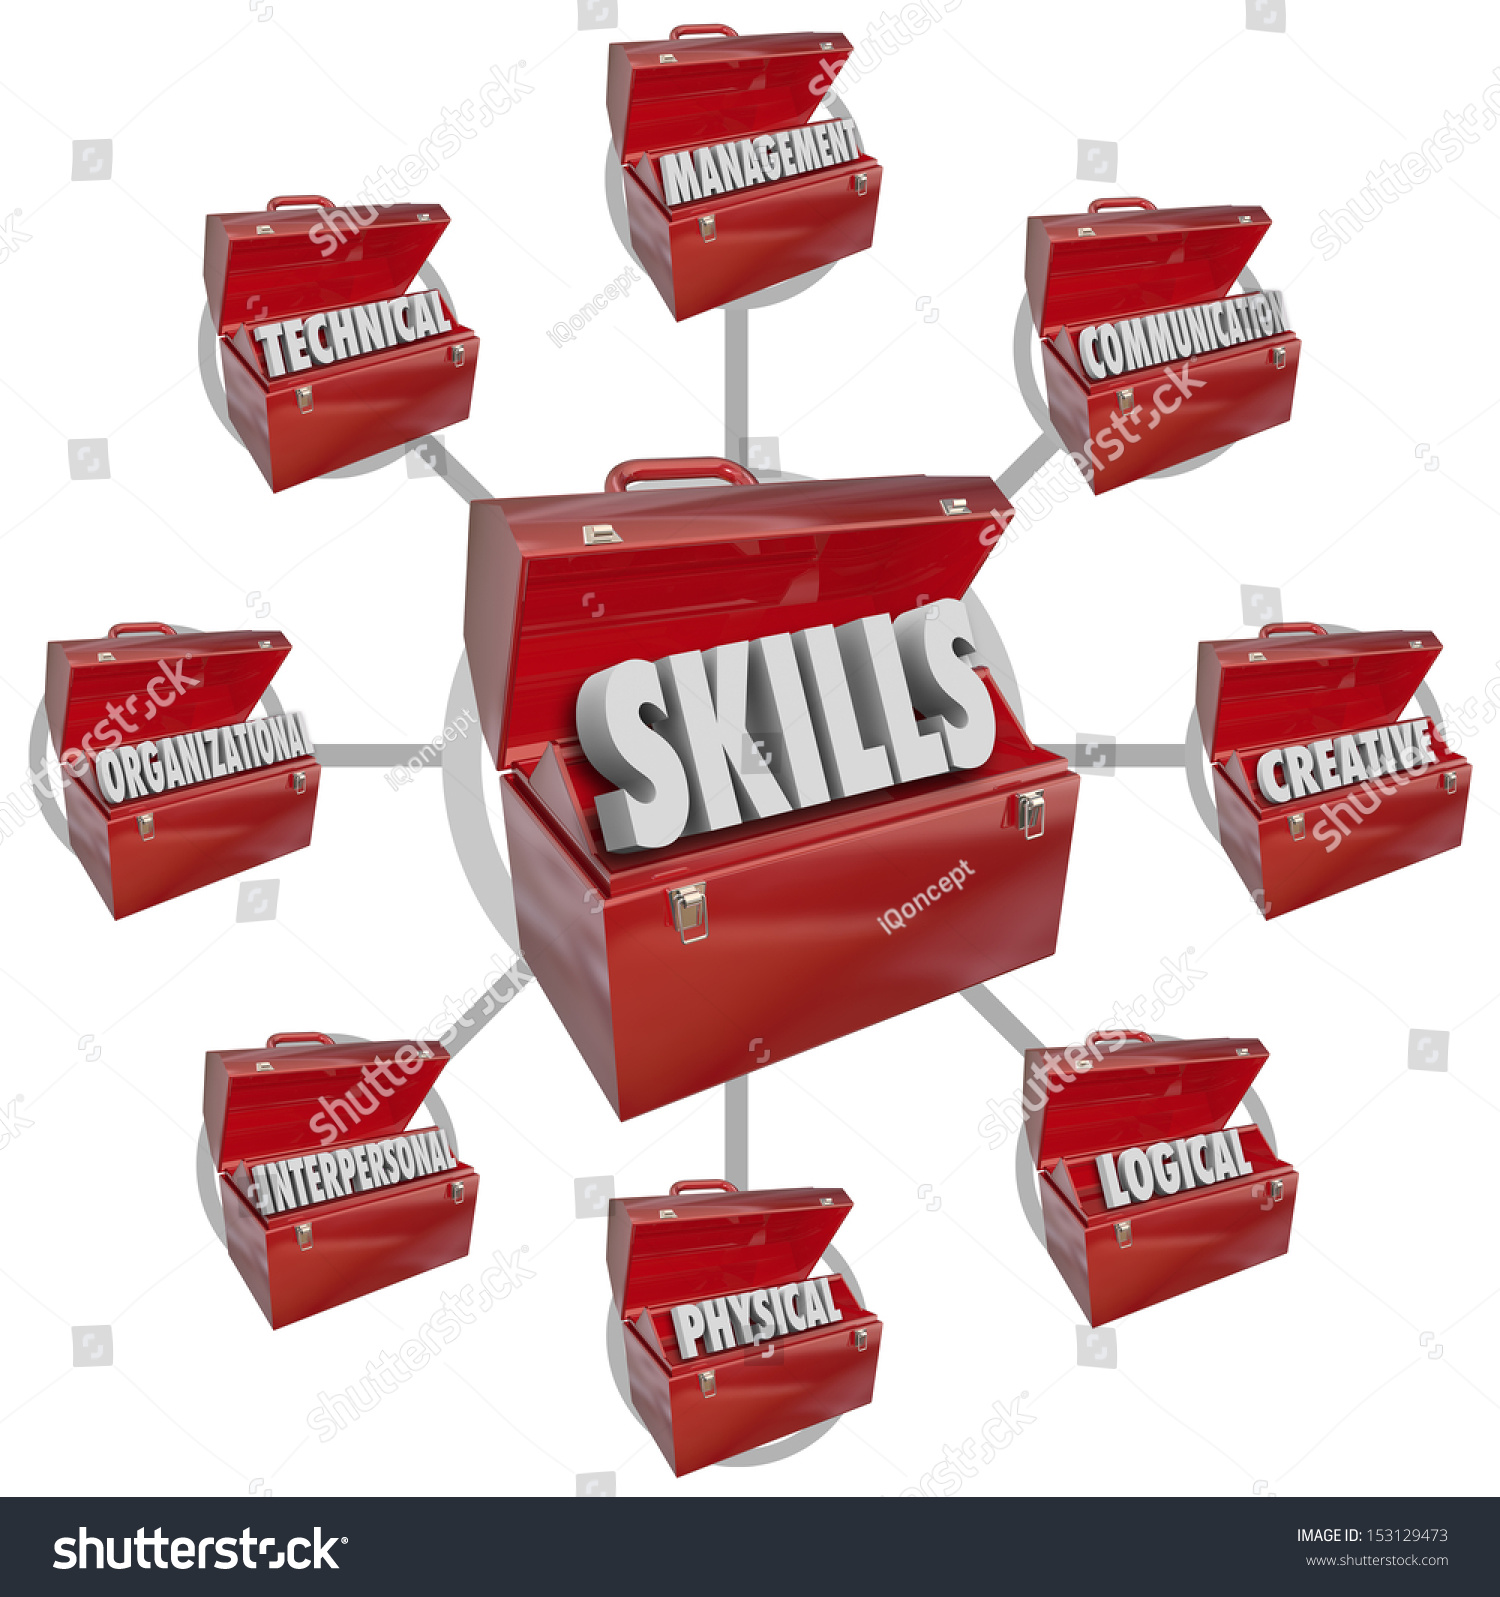 word skills on red metal lunchbox stock illustration 153129473 the word skills on a red metal lunchbox to illustrate desirable qualities and characteristics in a